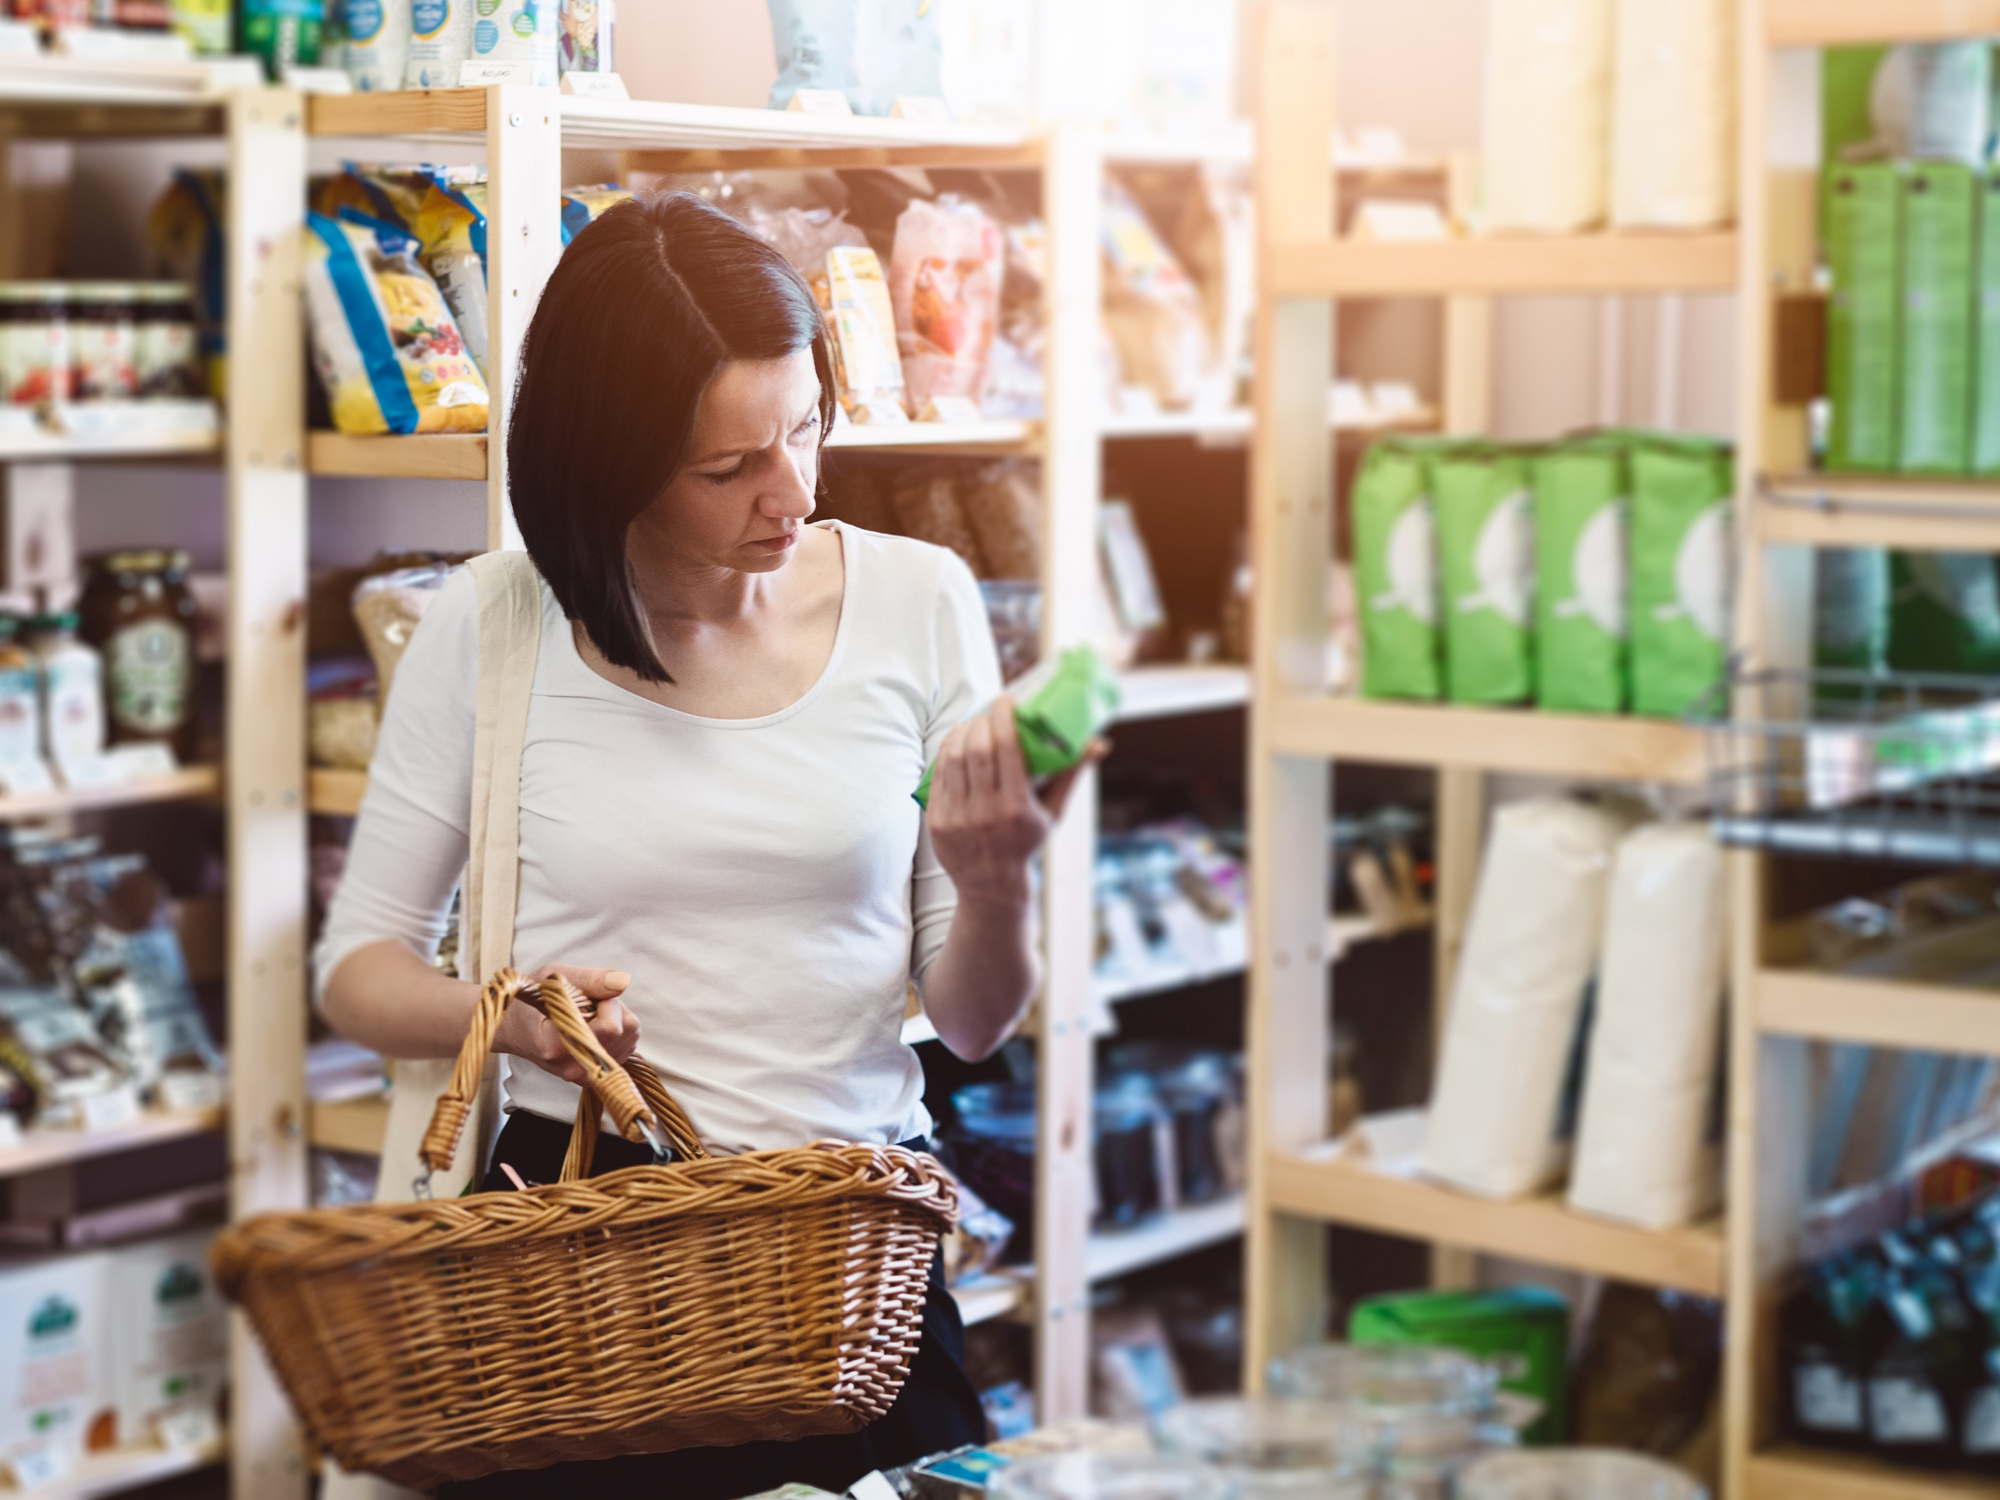 Woman looking at label in store